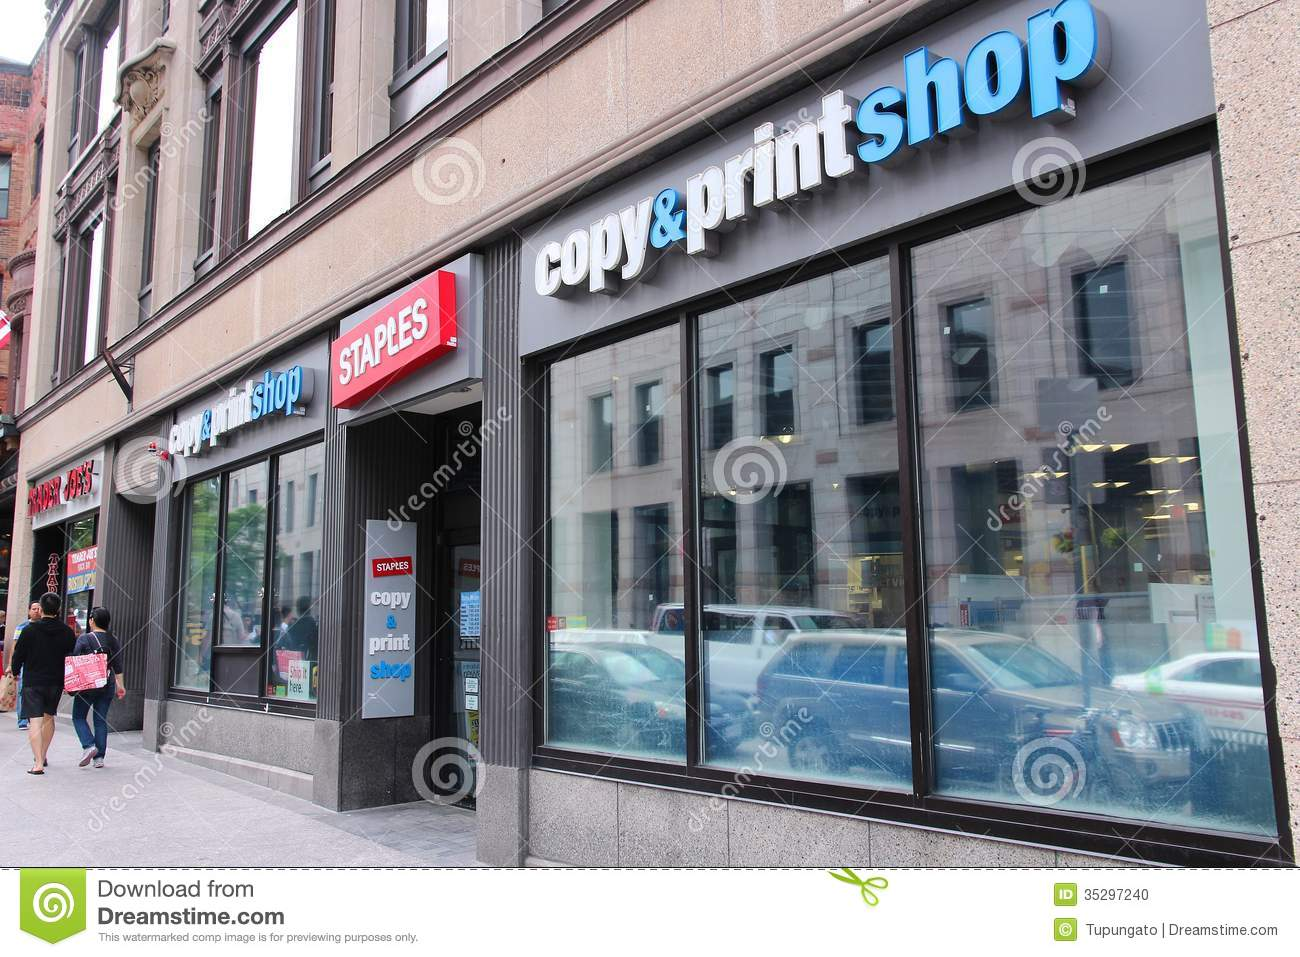 Staples Copy and Print Shop